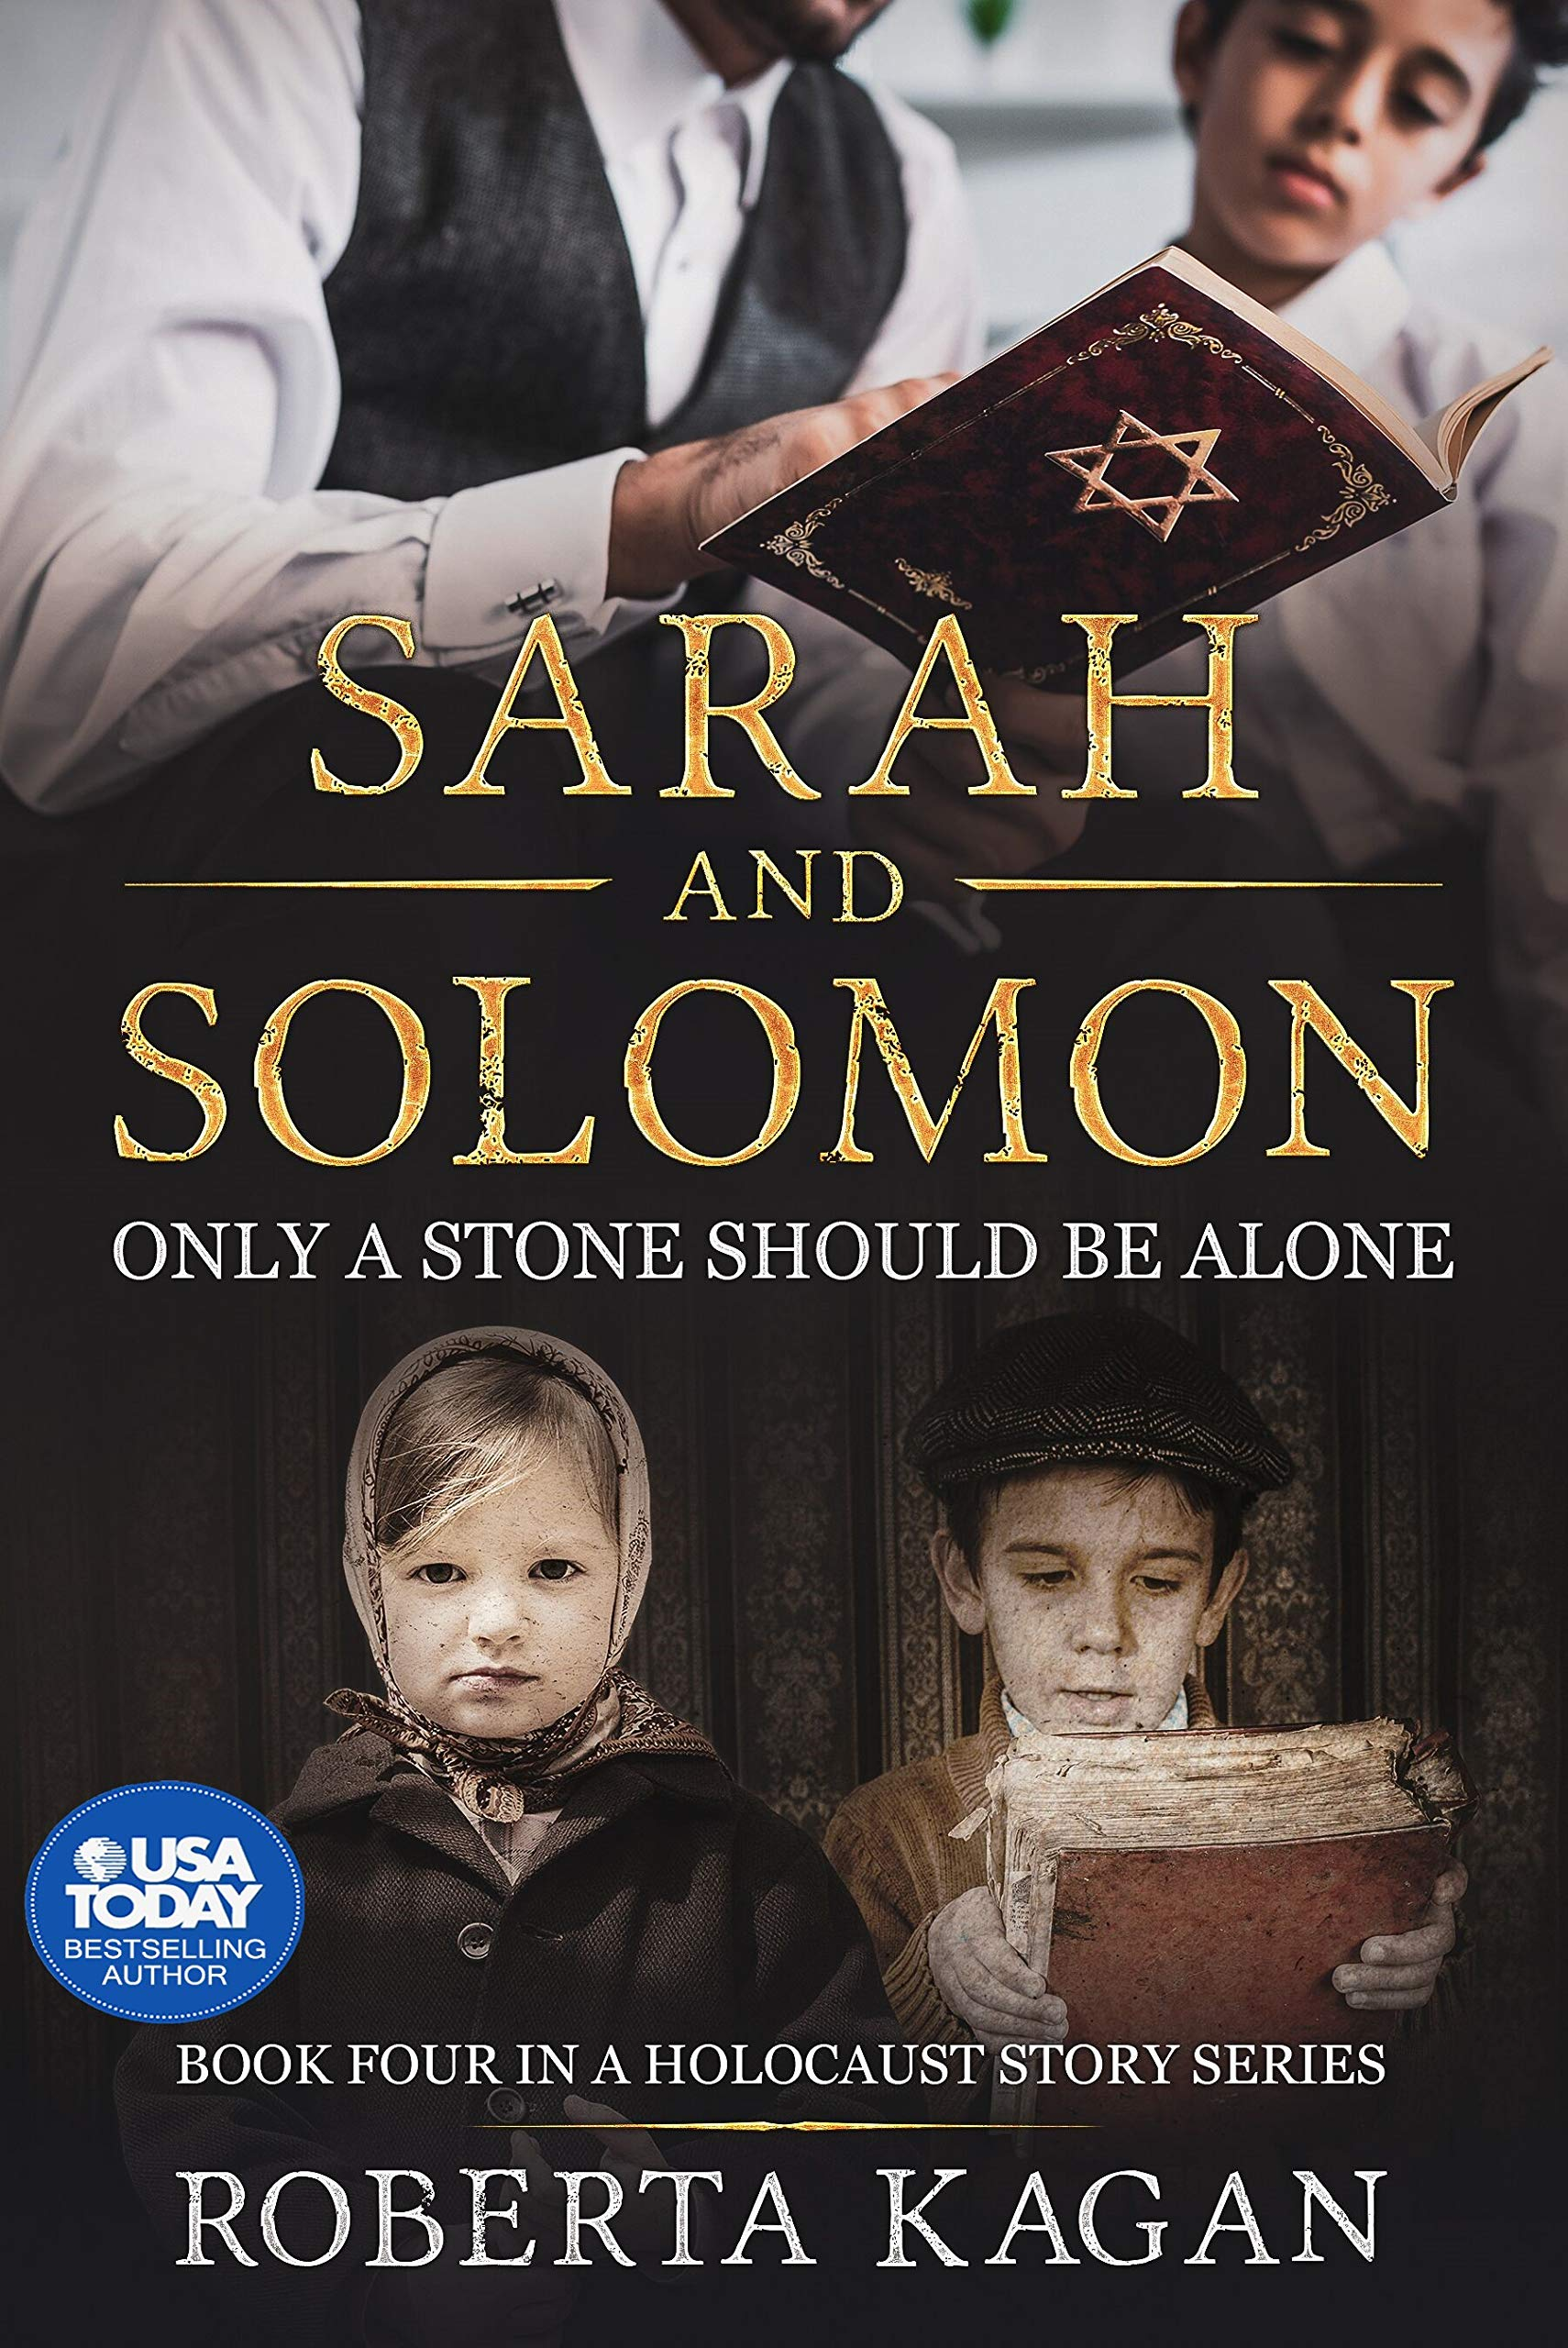 Sarah and Solomon: Only A Stone Should Be Alone (A Holocaust Story Series Book 4) por Roberta Kagan